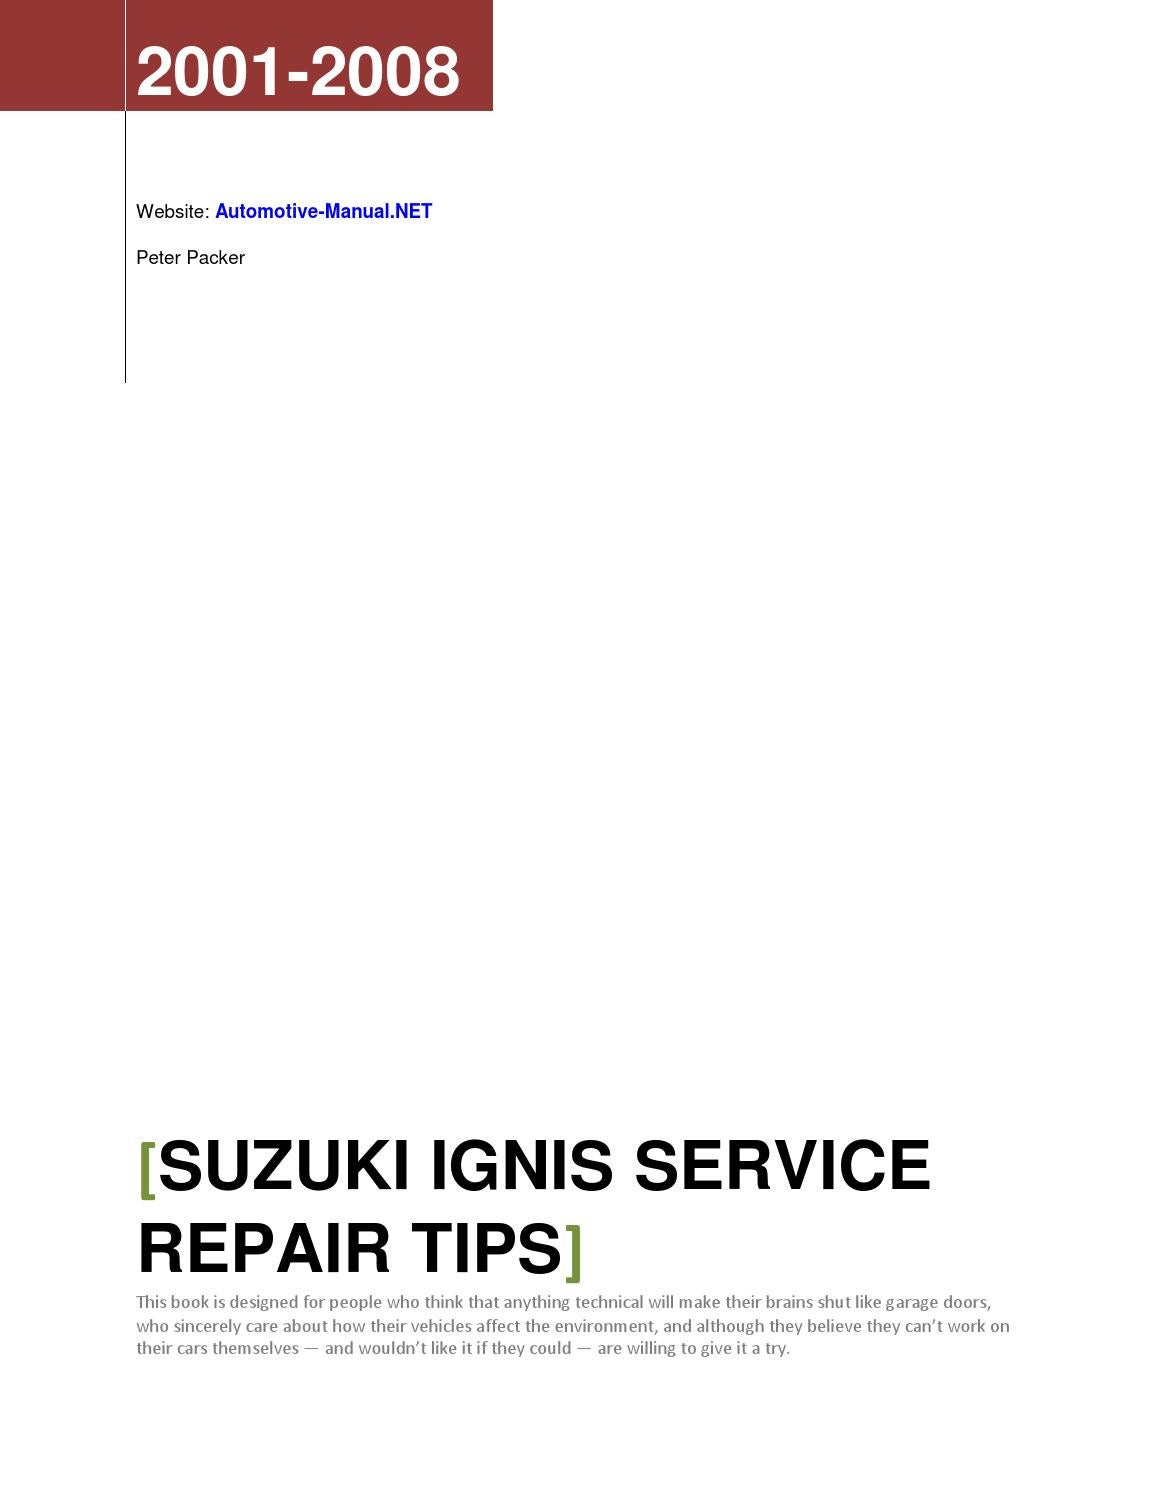 page_1 suzuki ignis 2001 2008 service repair tips by armando oliver issuu suzuki ignis sport wiring diagram at crackthecode.co